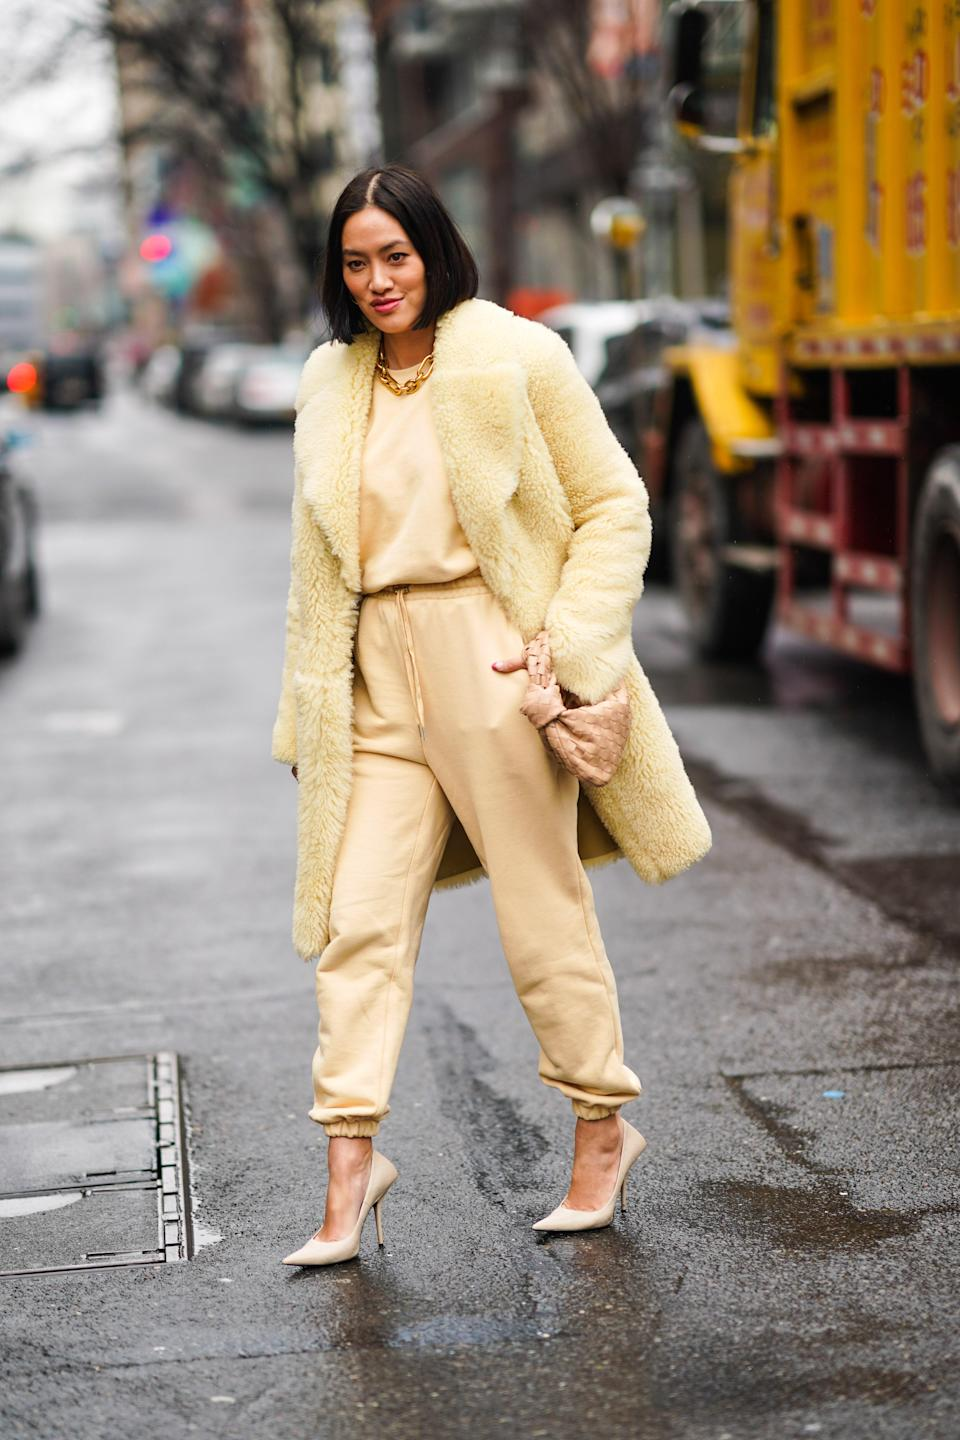 """<a href=""""https://www.glamour.com/gallery/best-sweatpants-for-women?mbid=synd_yahoo_rss"""" rel=""""nofollow noopener"""" target=""""_blank"""" data-ylk=""""slk:Sweatpants"""" class=""""link rapid-noclick-resp"""">Sweatpants</a> proved themselves to be the ultimate wardrobe MVP during quarantine, taking us from couch to grocery store and back again (and again)—but we aren't leaving them at home. Celebrities like <a href=""""https://www.glamour.com/story/katie-holmes-sweatpants-blazer-fall-outfit?mbid=synd_yahoo_rss"""" rel=""""nofollow noopener"""" target=""""_blank"""" data-ylk=""""slk:Katie Holmes"""" class=""""link rapid-noclick-resp"""">Katie Holmes</a> showed us how they can help you turn a <em>lewk</em>, and the pandemic ushered in options beyond standard grey. You can now find plenty of joggers in bold hues, head-turning prints, and <a href=""""https://www.glamour.com/gallery/brown-neutral-trend?mbid=synd_yahoo_rss"""" rel=""""nofollow noopener"""" target=""""_blank"""" data-ylk=""""slk:fresh neutrals"""" class=""""link rapid-noclick-resp"""">fresh neutrals</a>."""